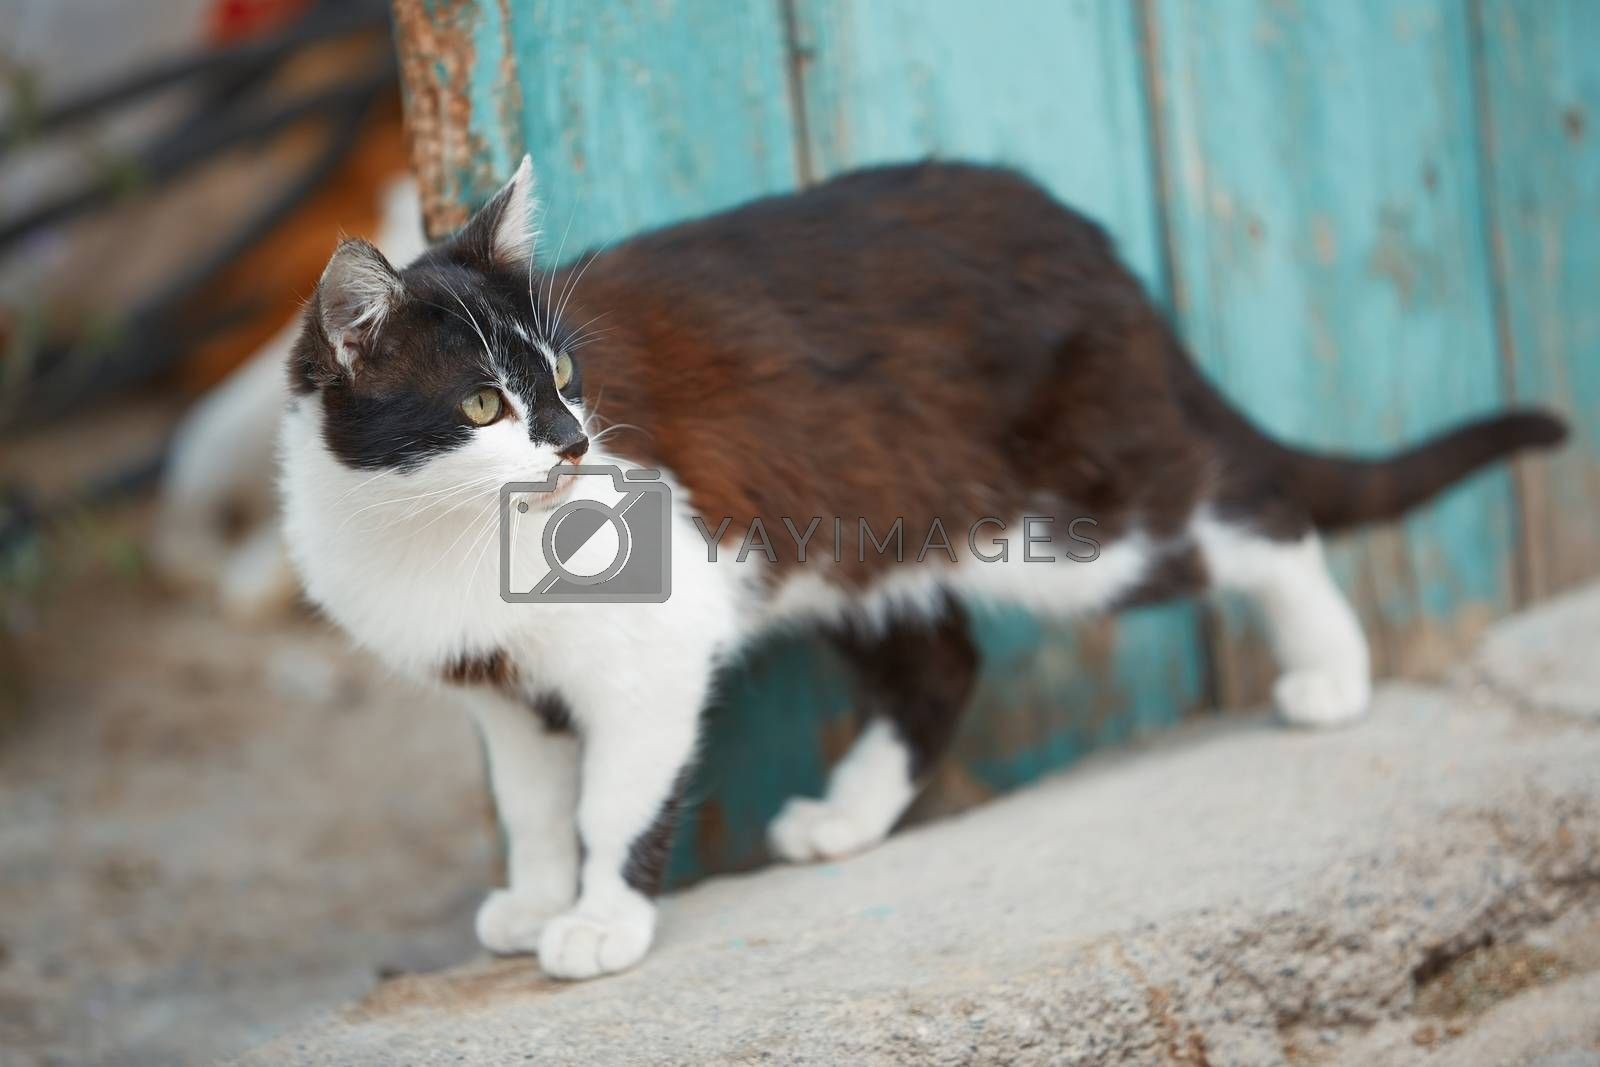 Royalty free image of Domestic cat by Novic